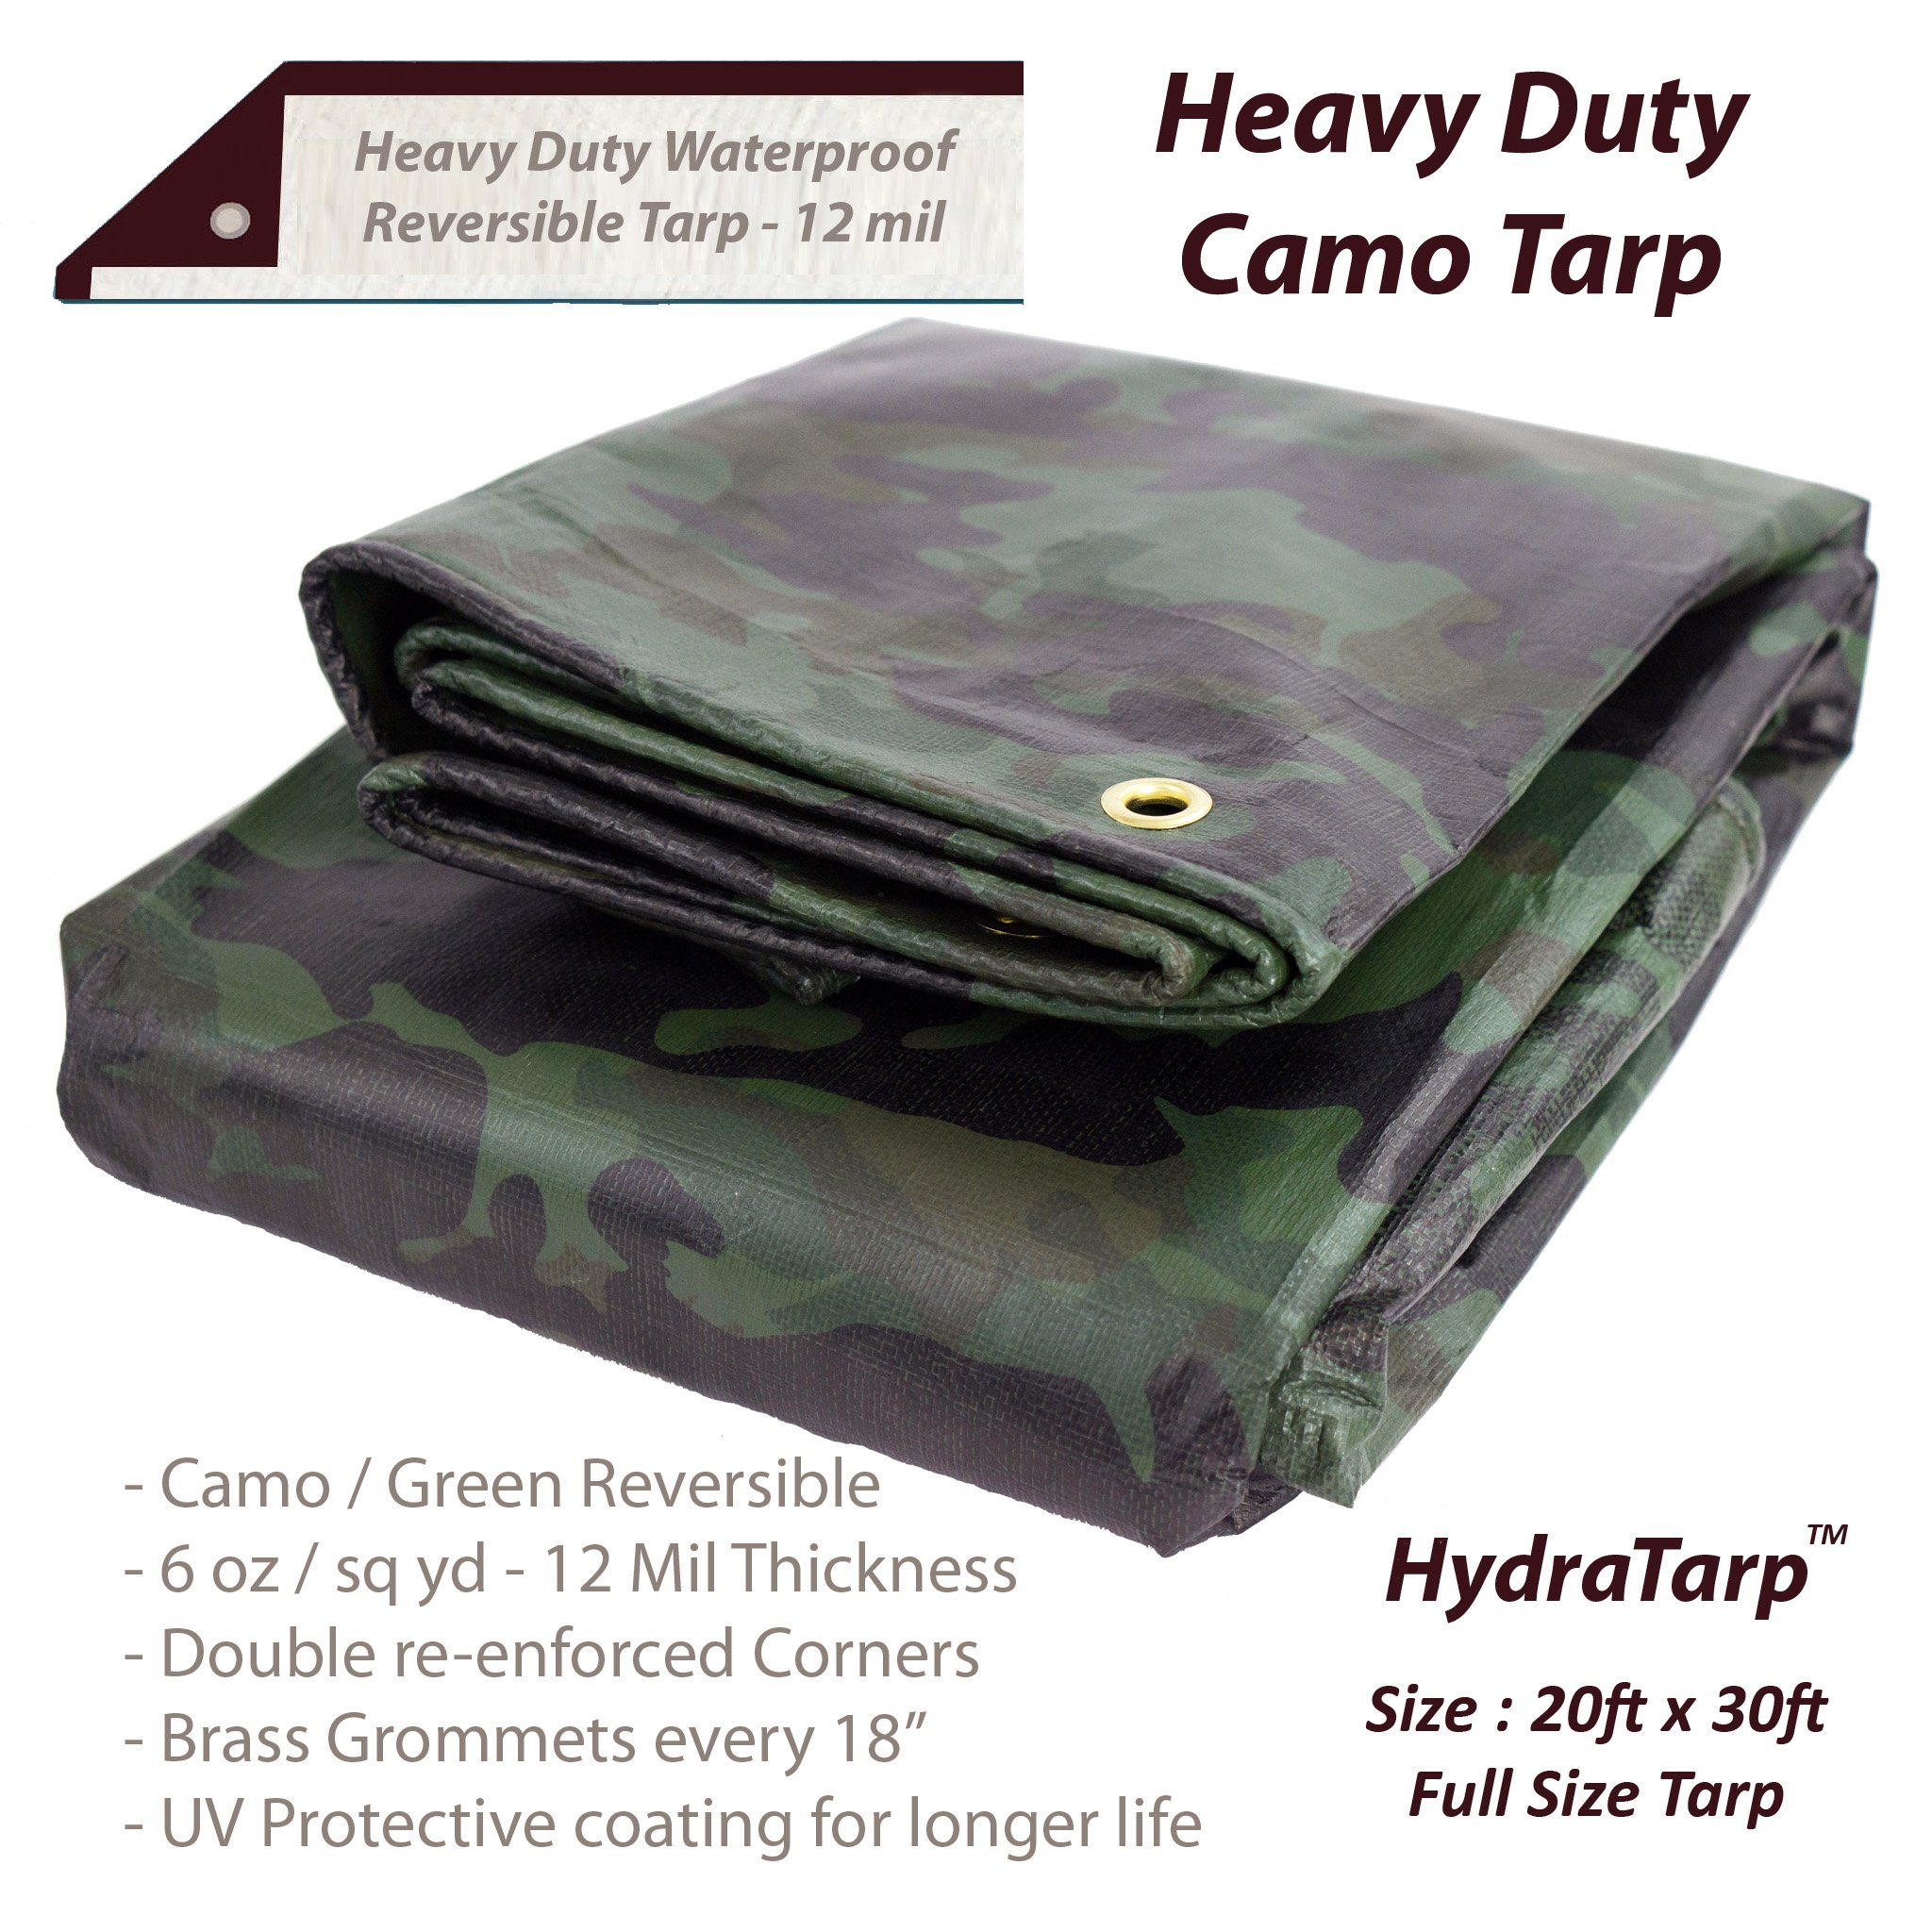 Heavy Duty Waterproof Camo Tarp - Reversible Camouflage / Green vinyl Tarp -20x30 with UV protection for outdoor camping RV Truck and trailers